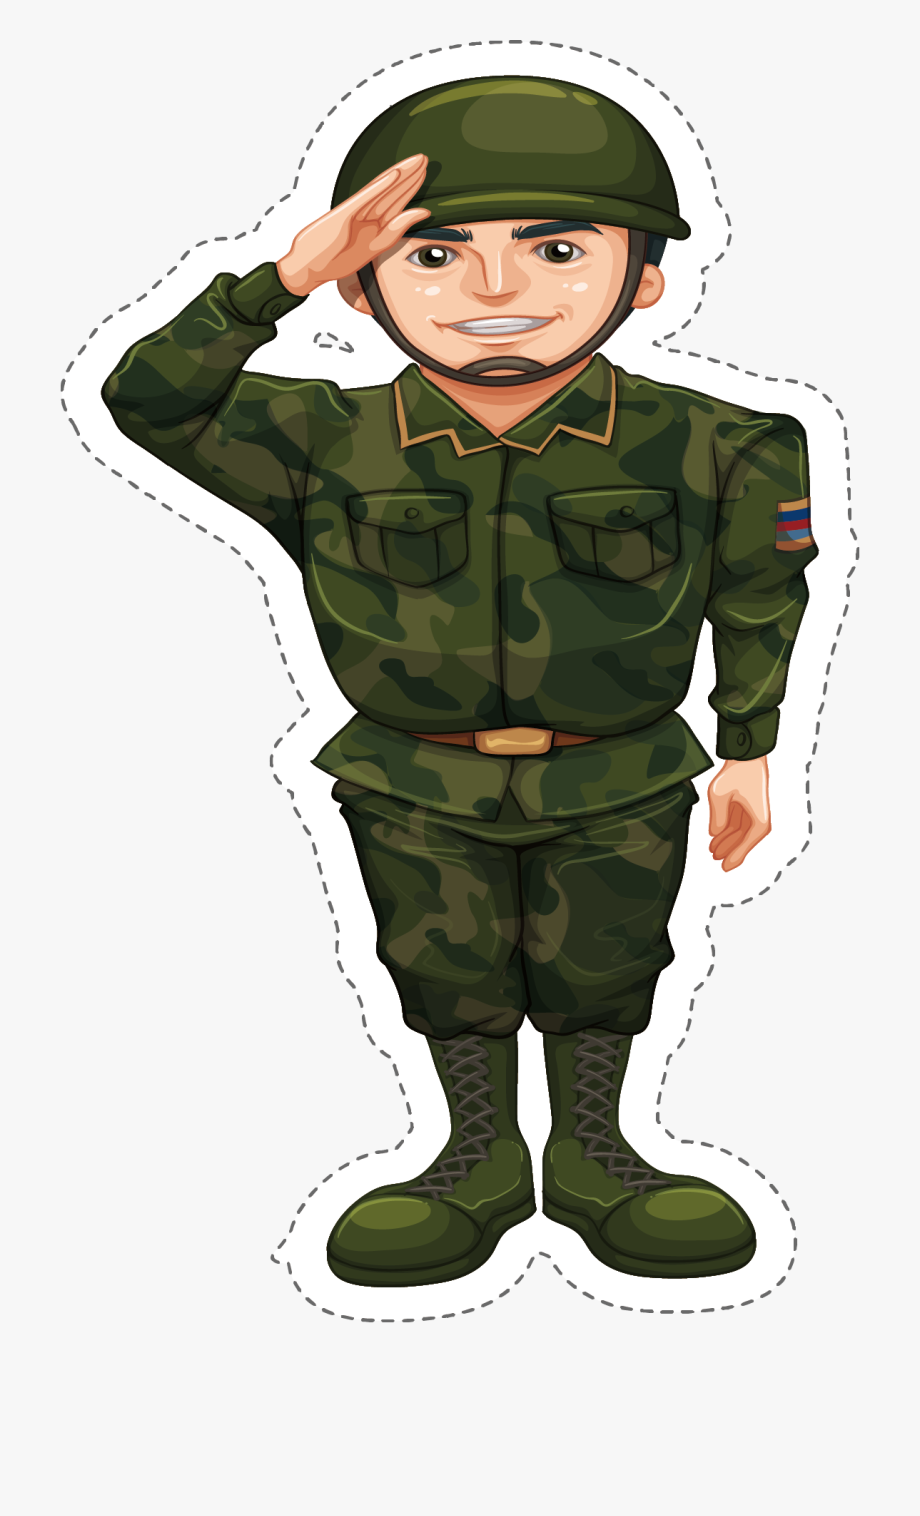 Military camouflage soldier doing. Army clipart army person